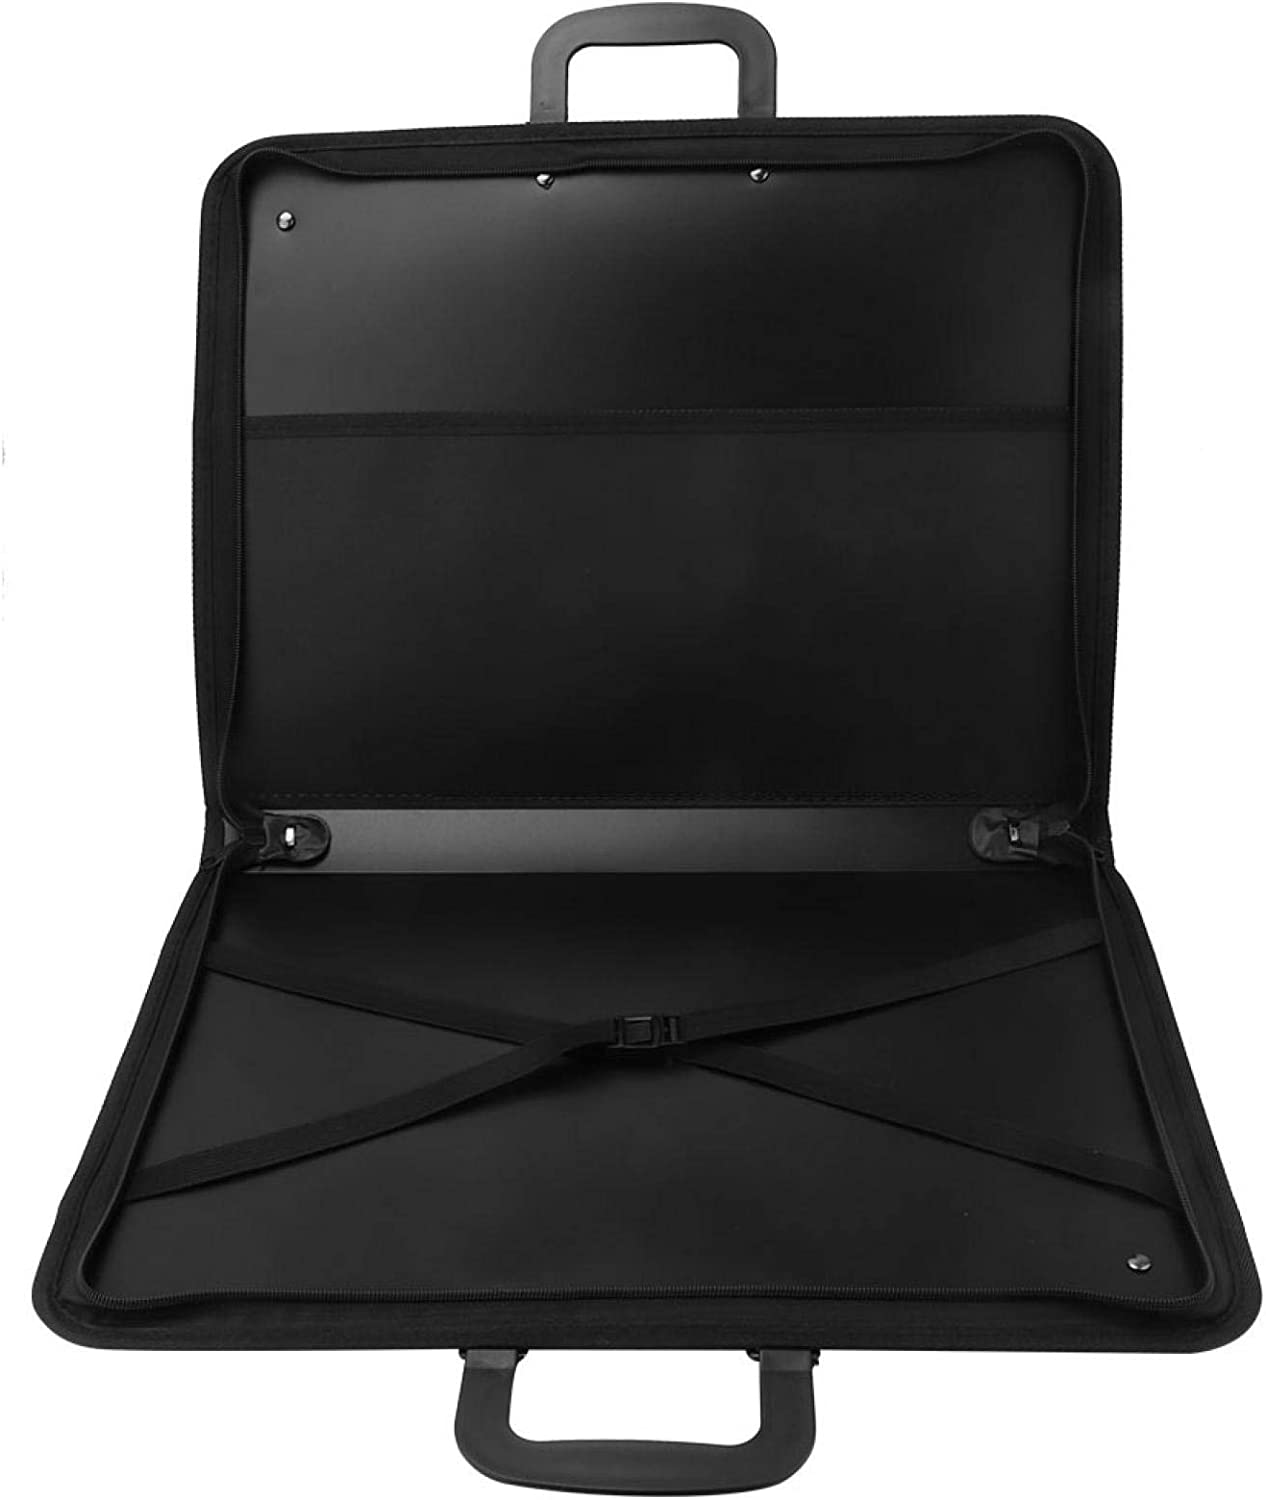 Painting Board Bag A3 Recommended Drawing Case Max 64% OFF Art Por Black Canvas Document